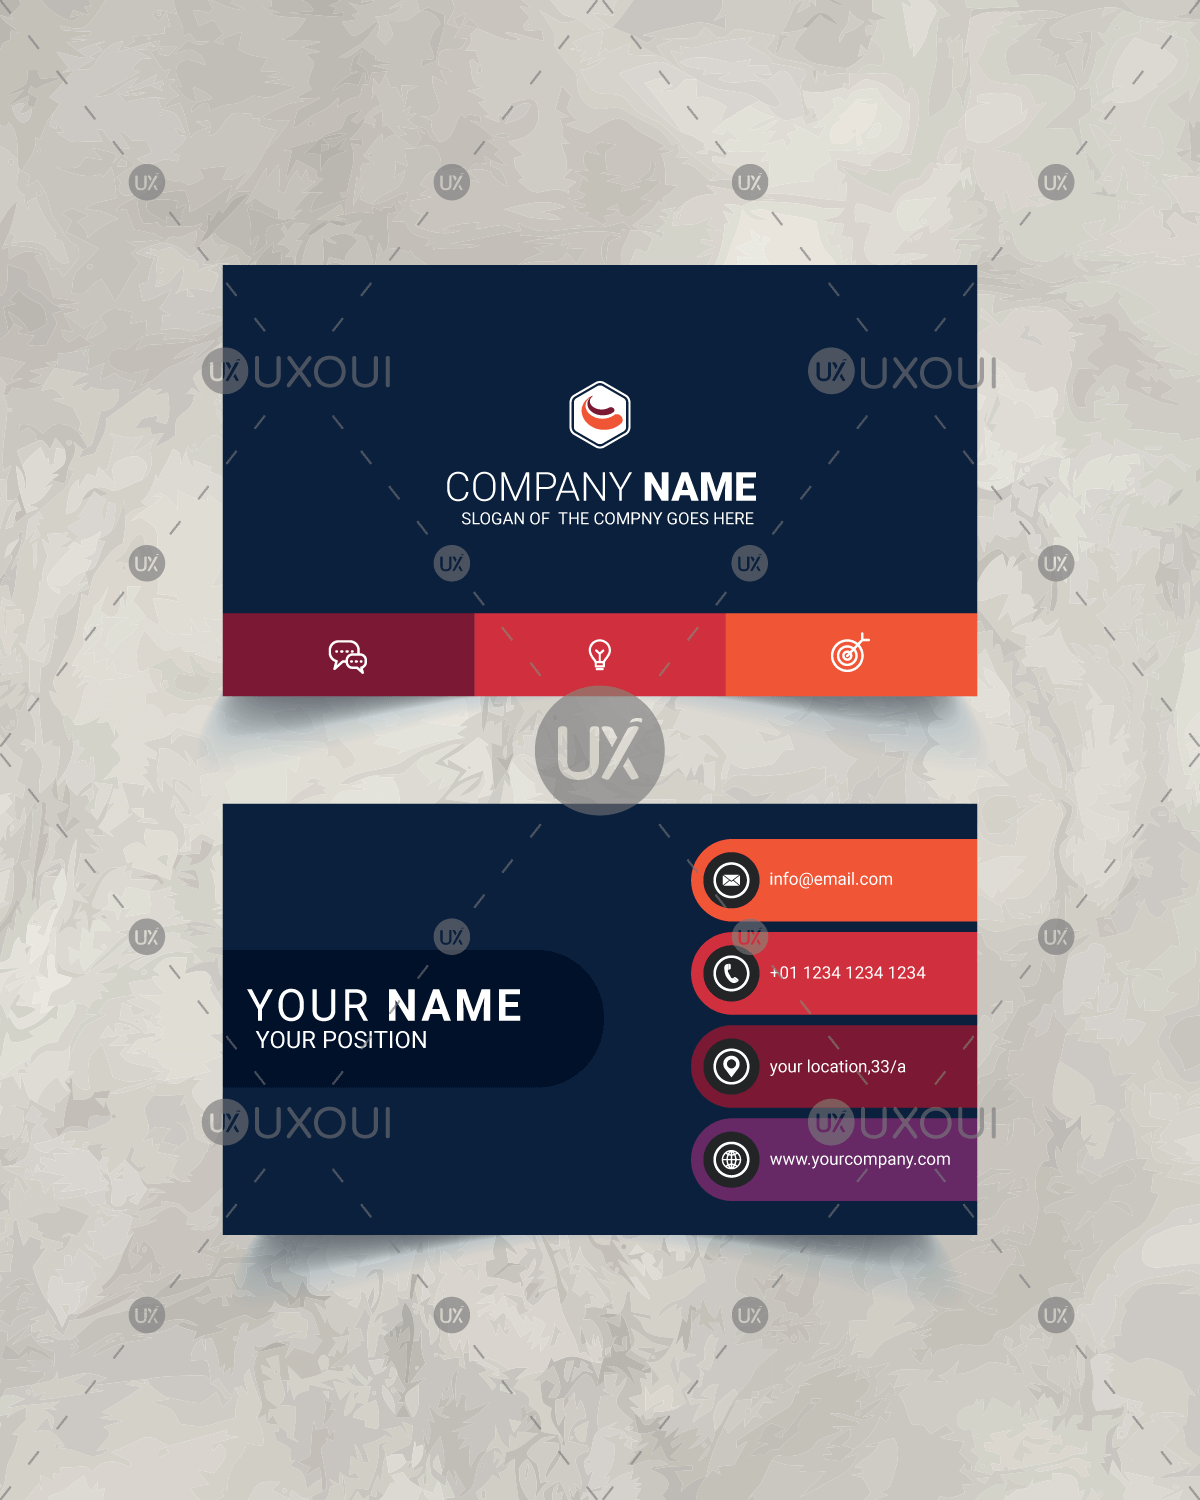 Stylish Modern Business Card Design Template Vector Uxoui